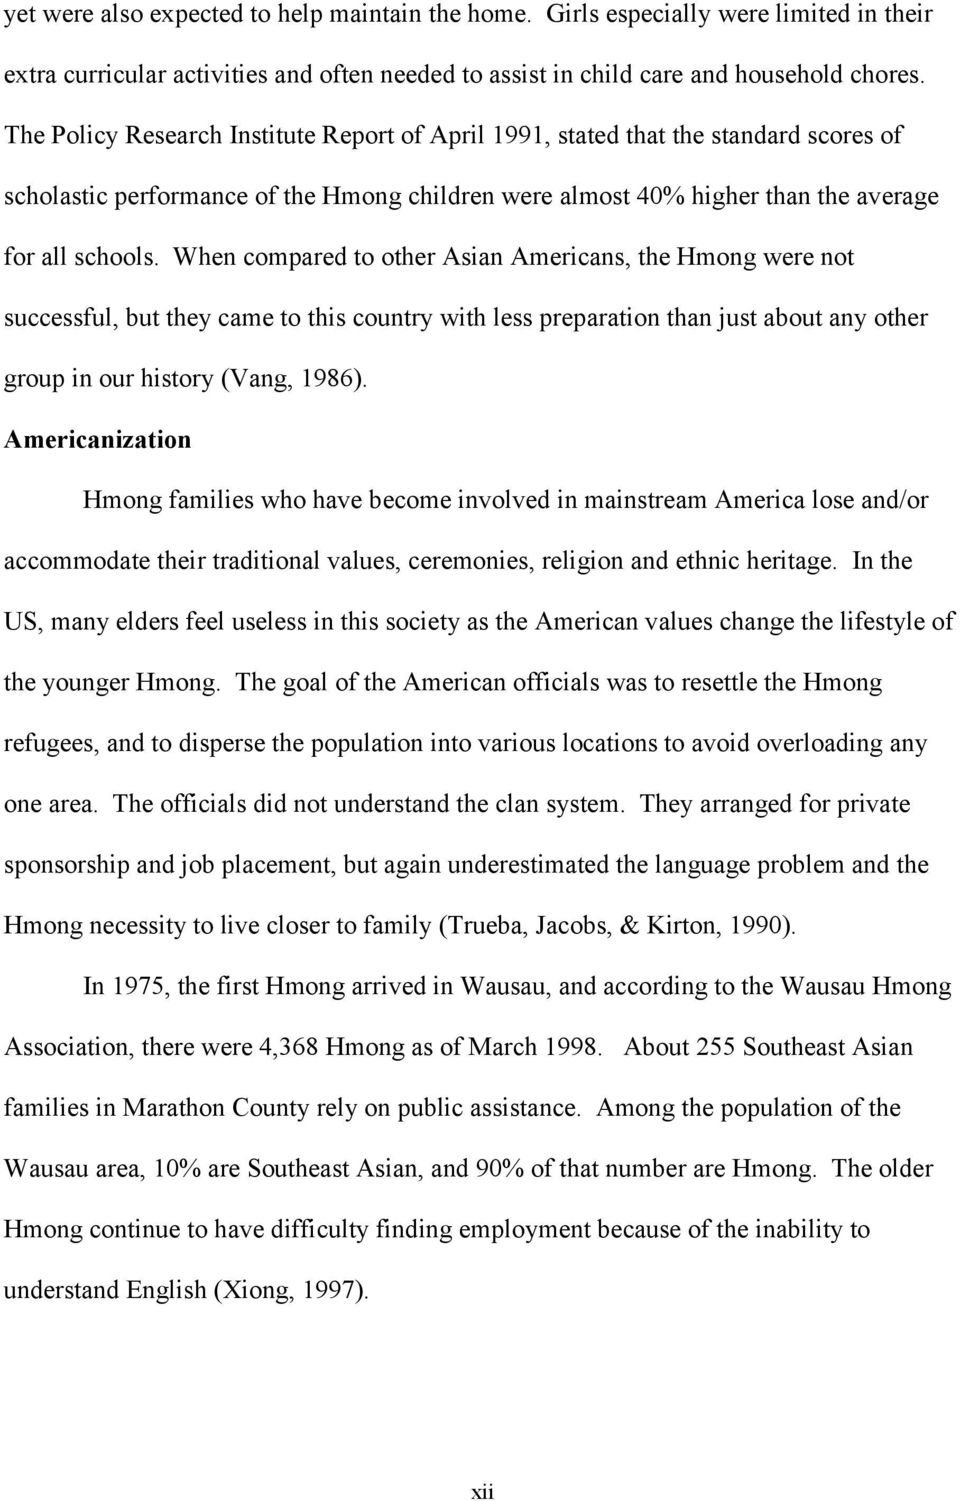 When compared to other Asian Americans, the Hmong were not successful, but they came to this country with less preparation than just about any other group in our history (Vang, 1986).